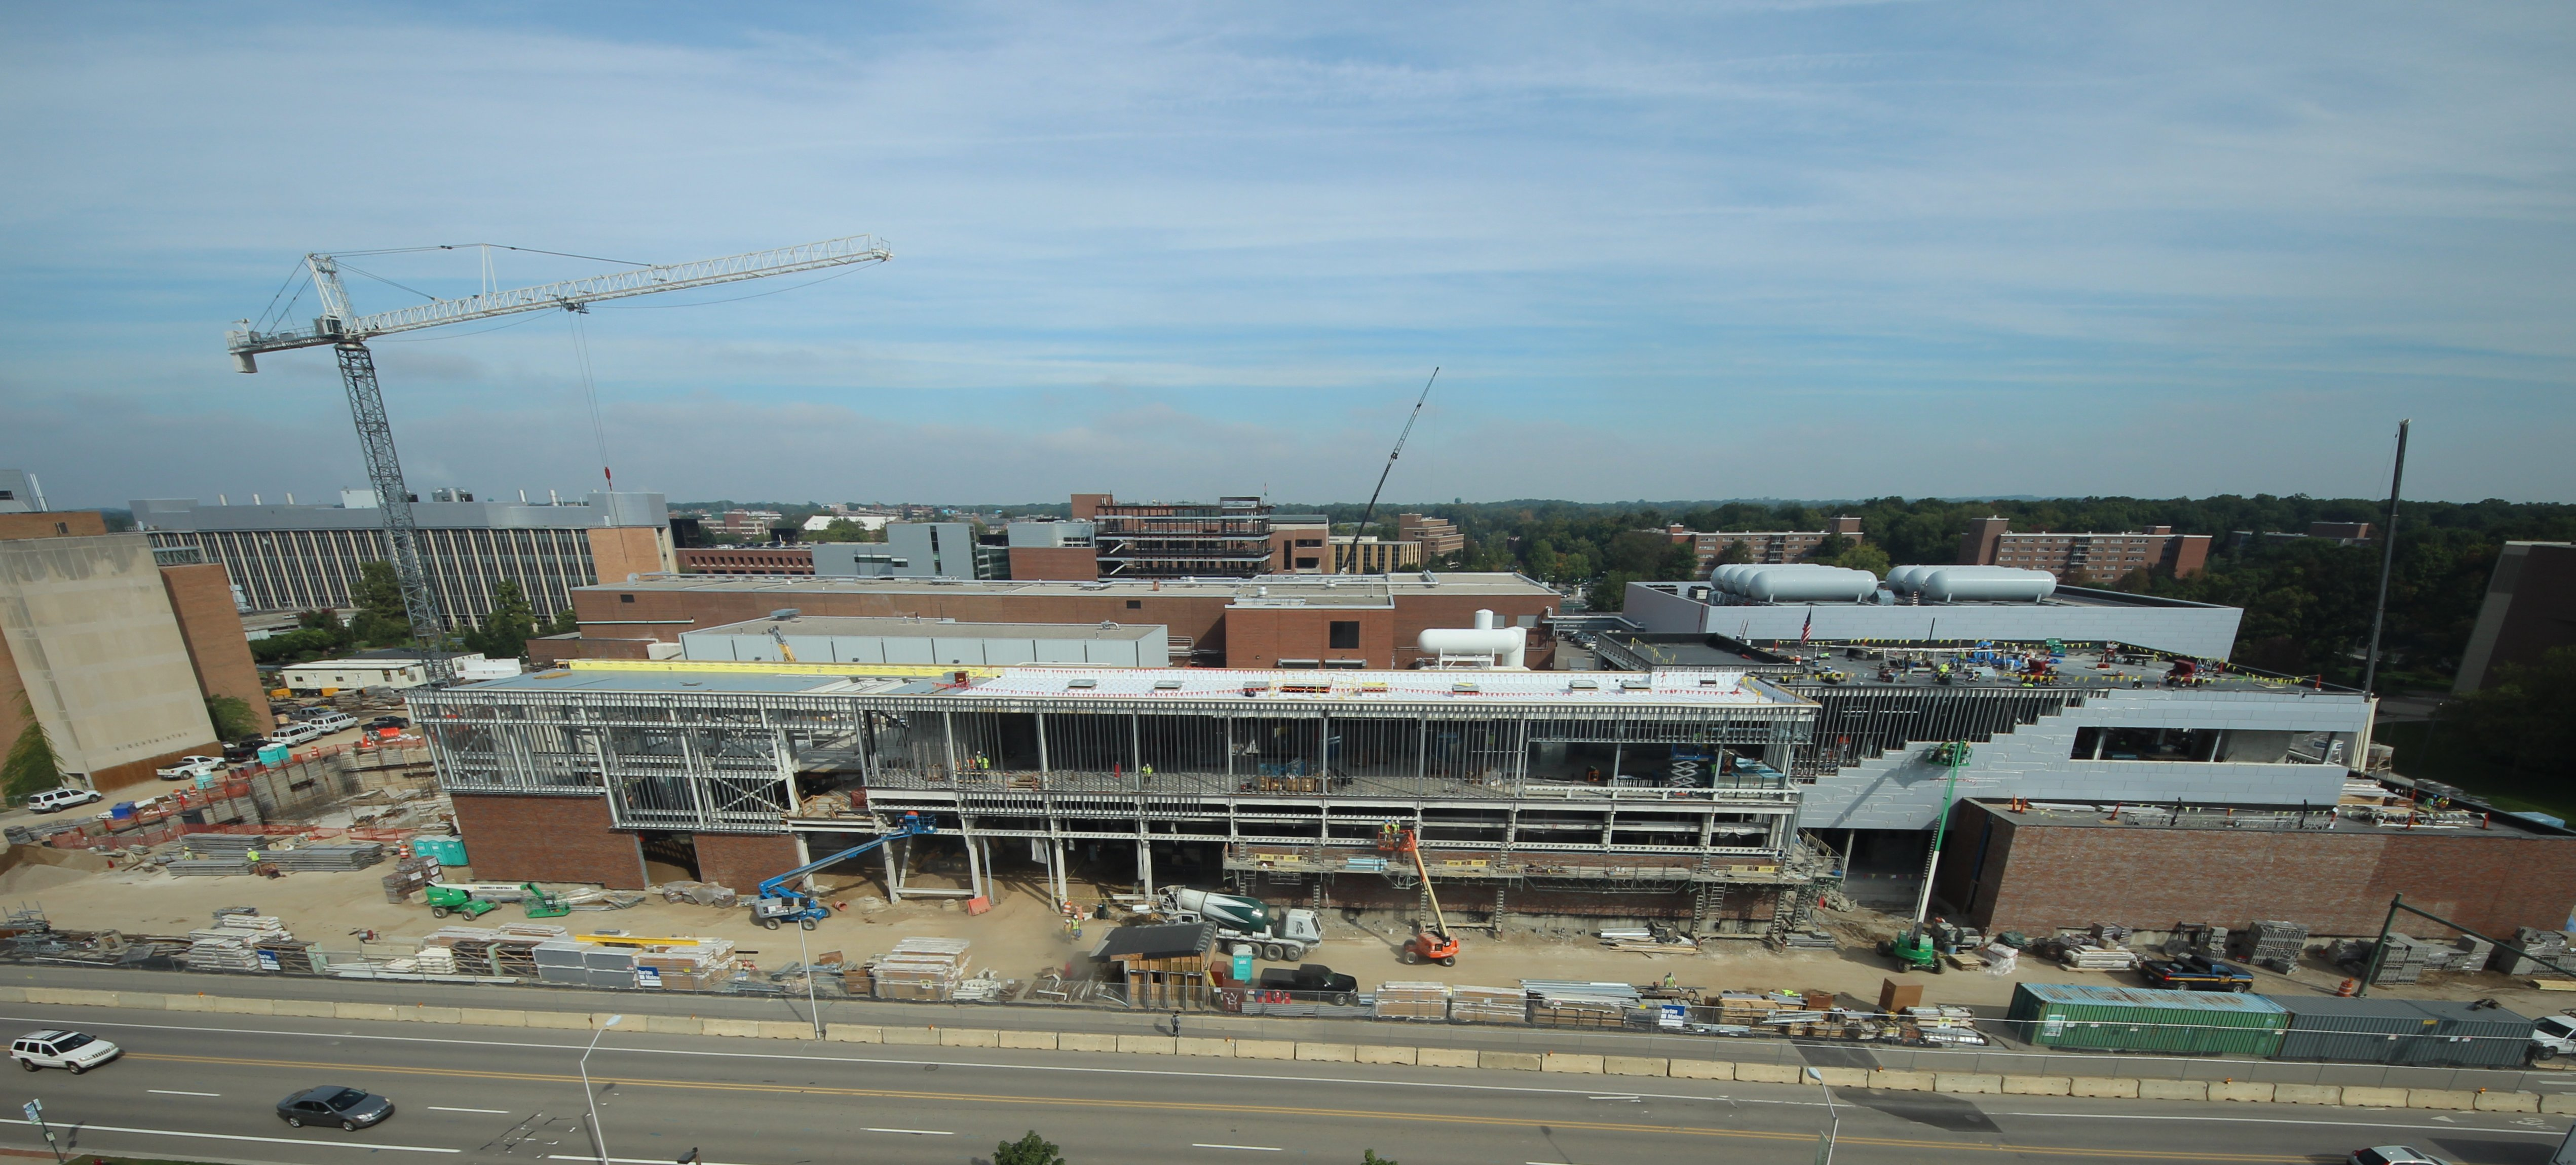 Image of FRIB's current construction